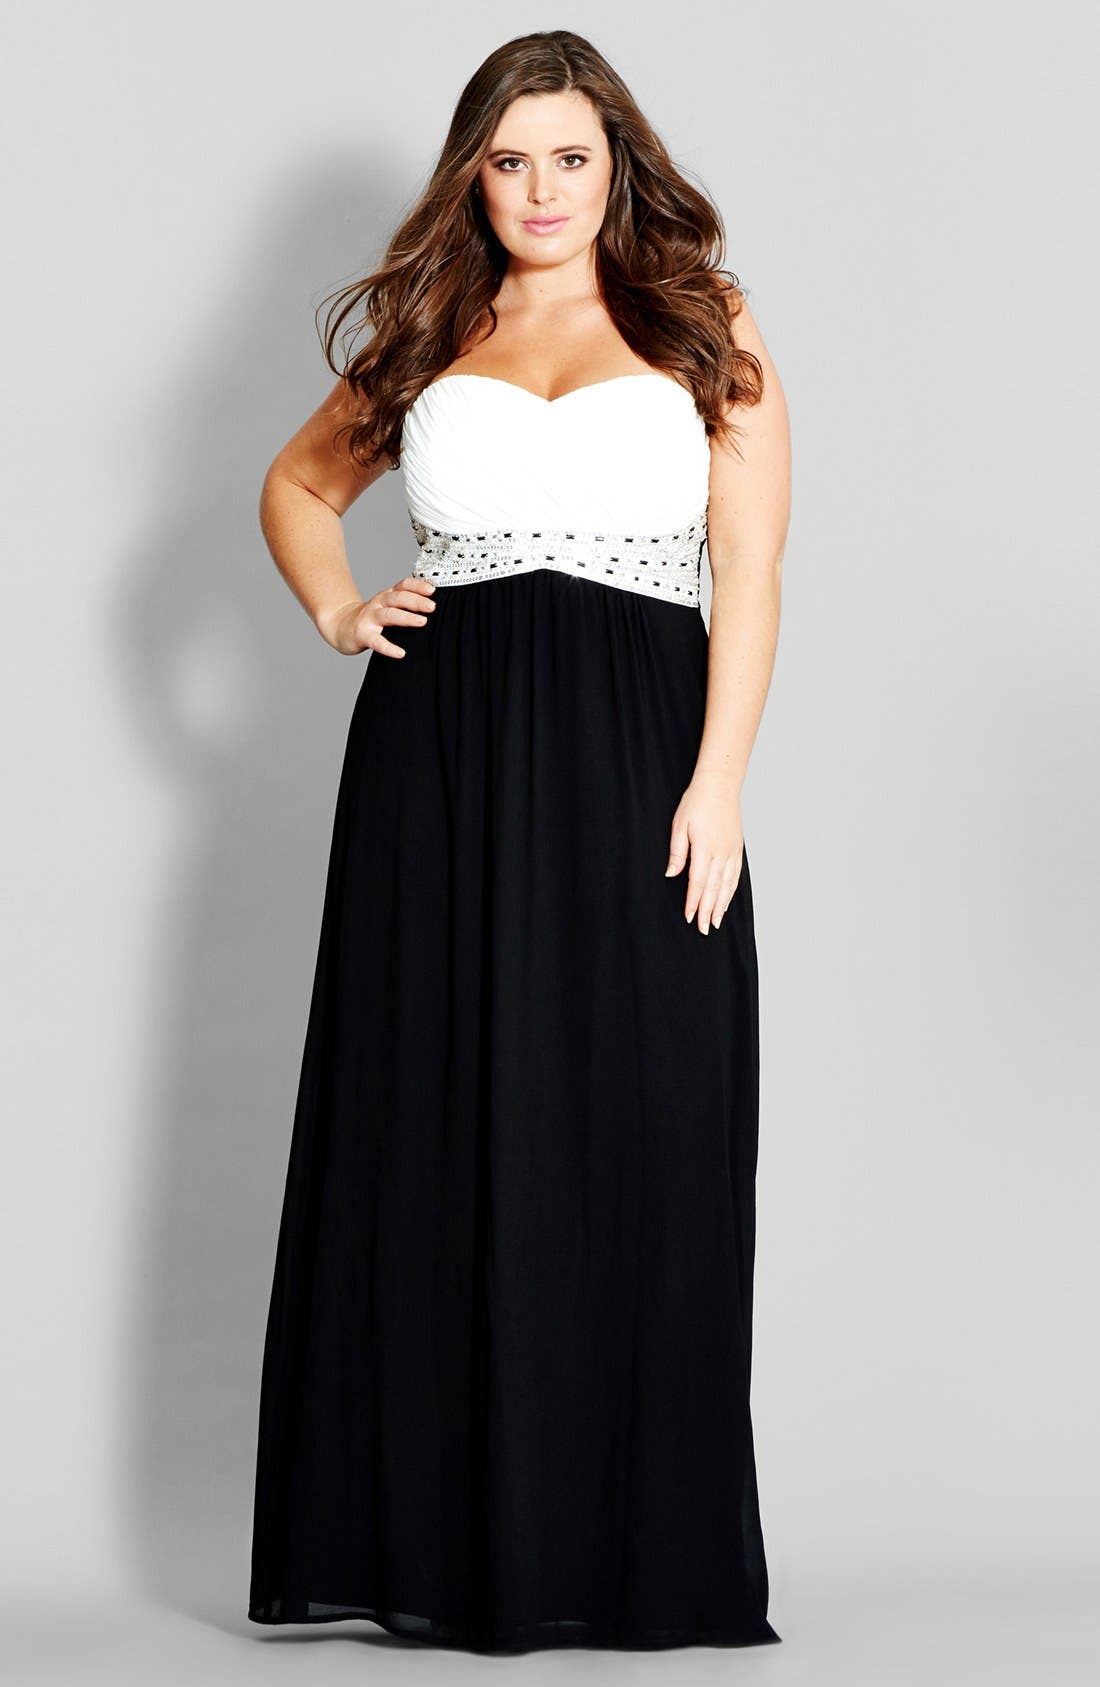 City Chic 'Contrast Camilla' Embellished Strapless Maxi Dress (Plus Size)